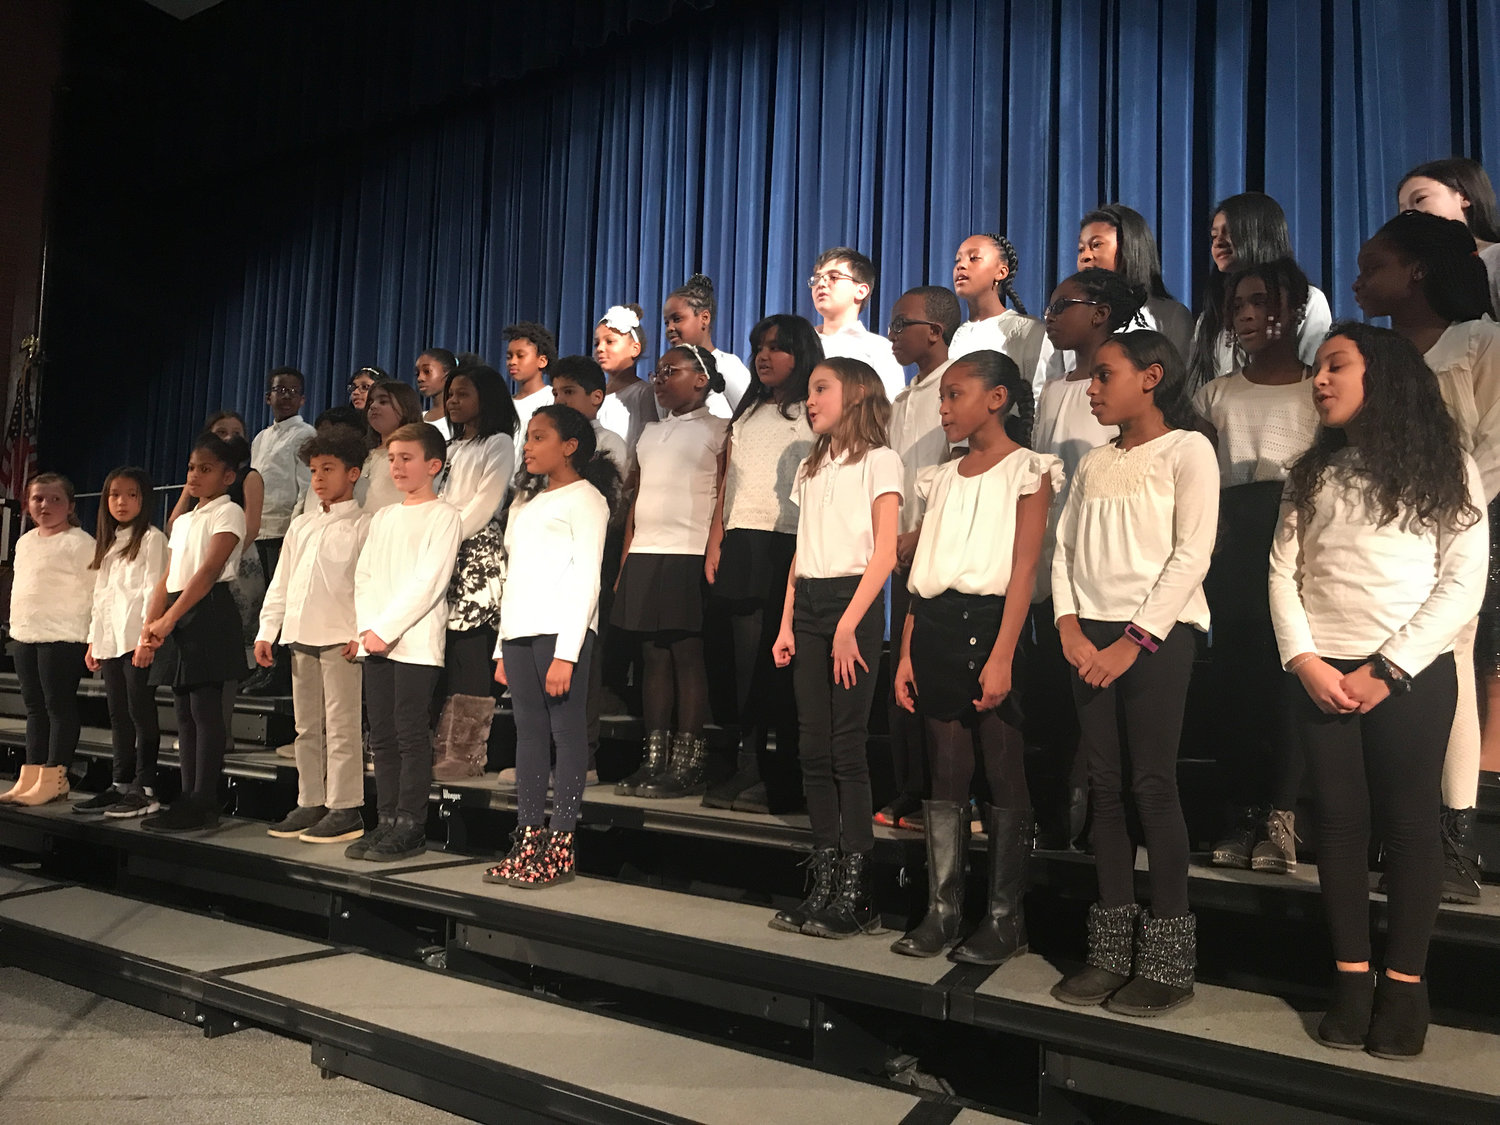 The Baldwin school district's music program begins at the elementary level.